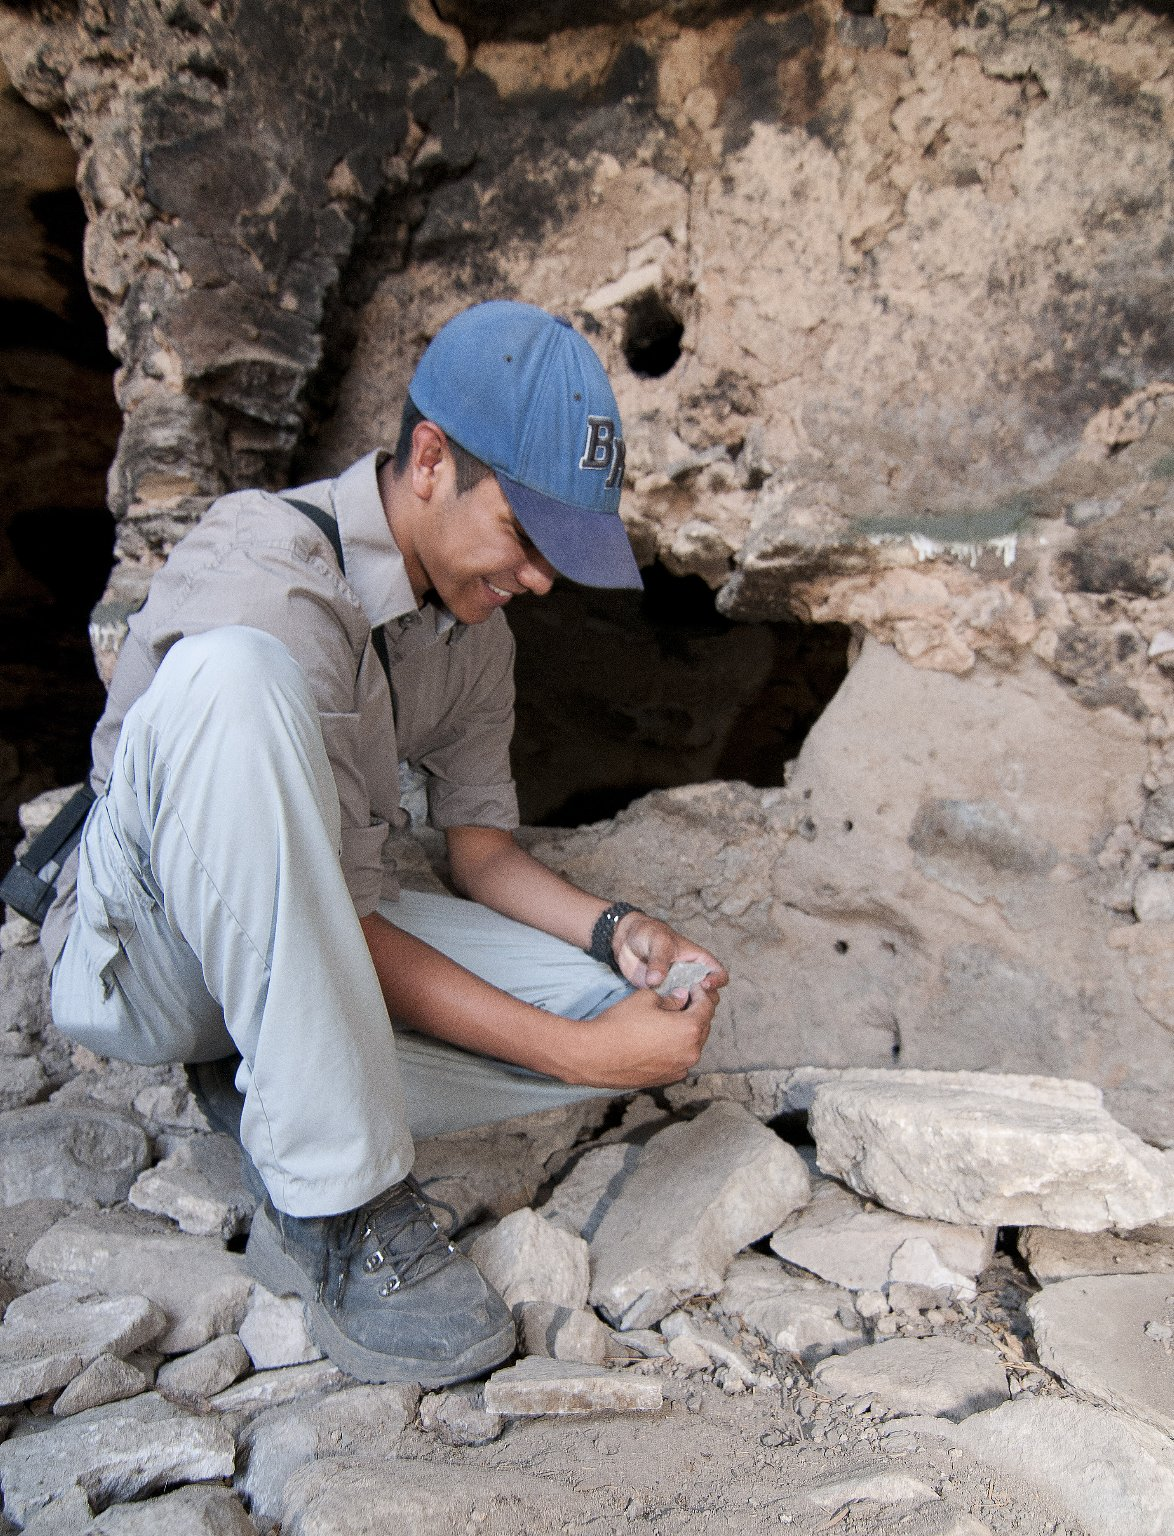 Vincent Morris examines an object at the Hinkle Park Cliff Dwelling research site.